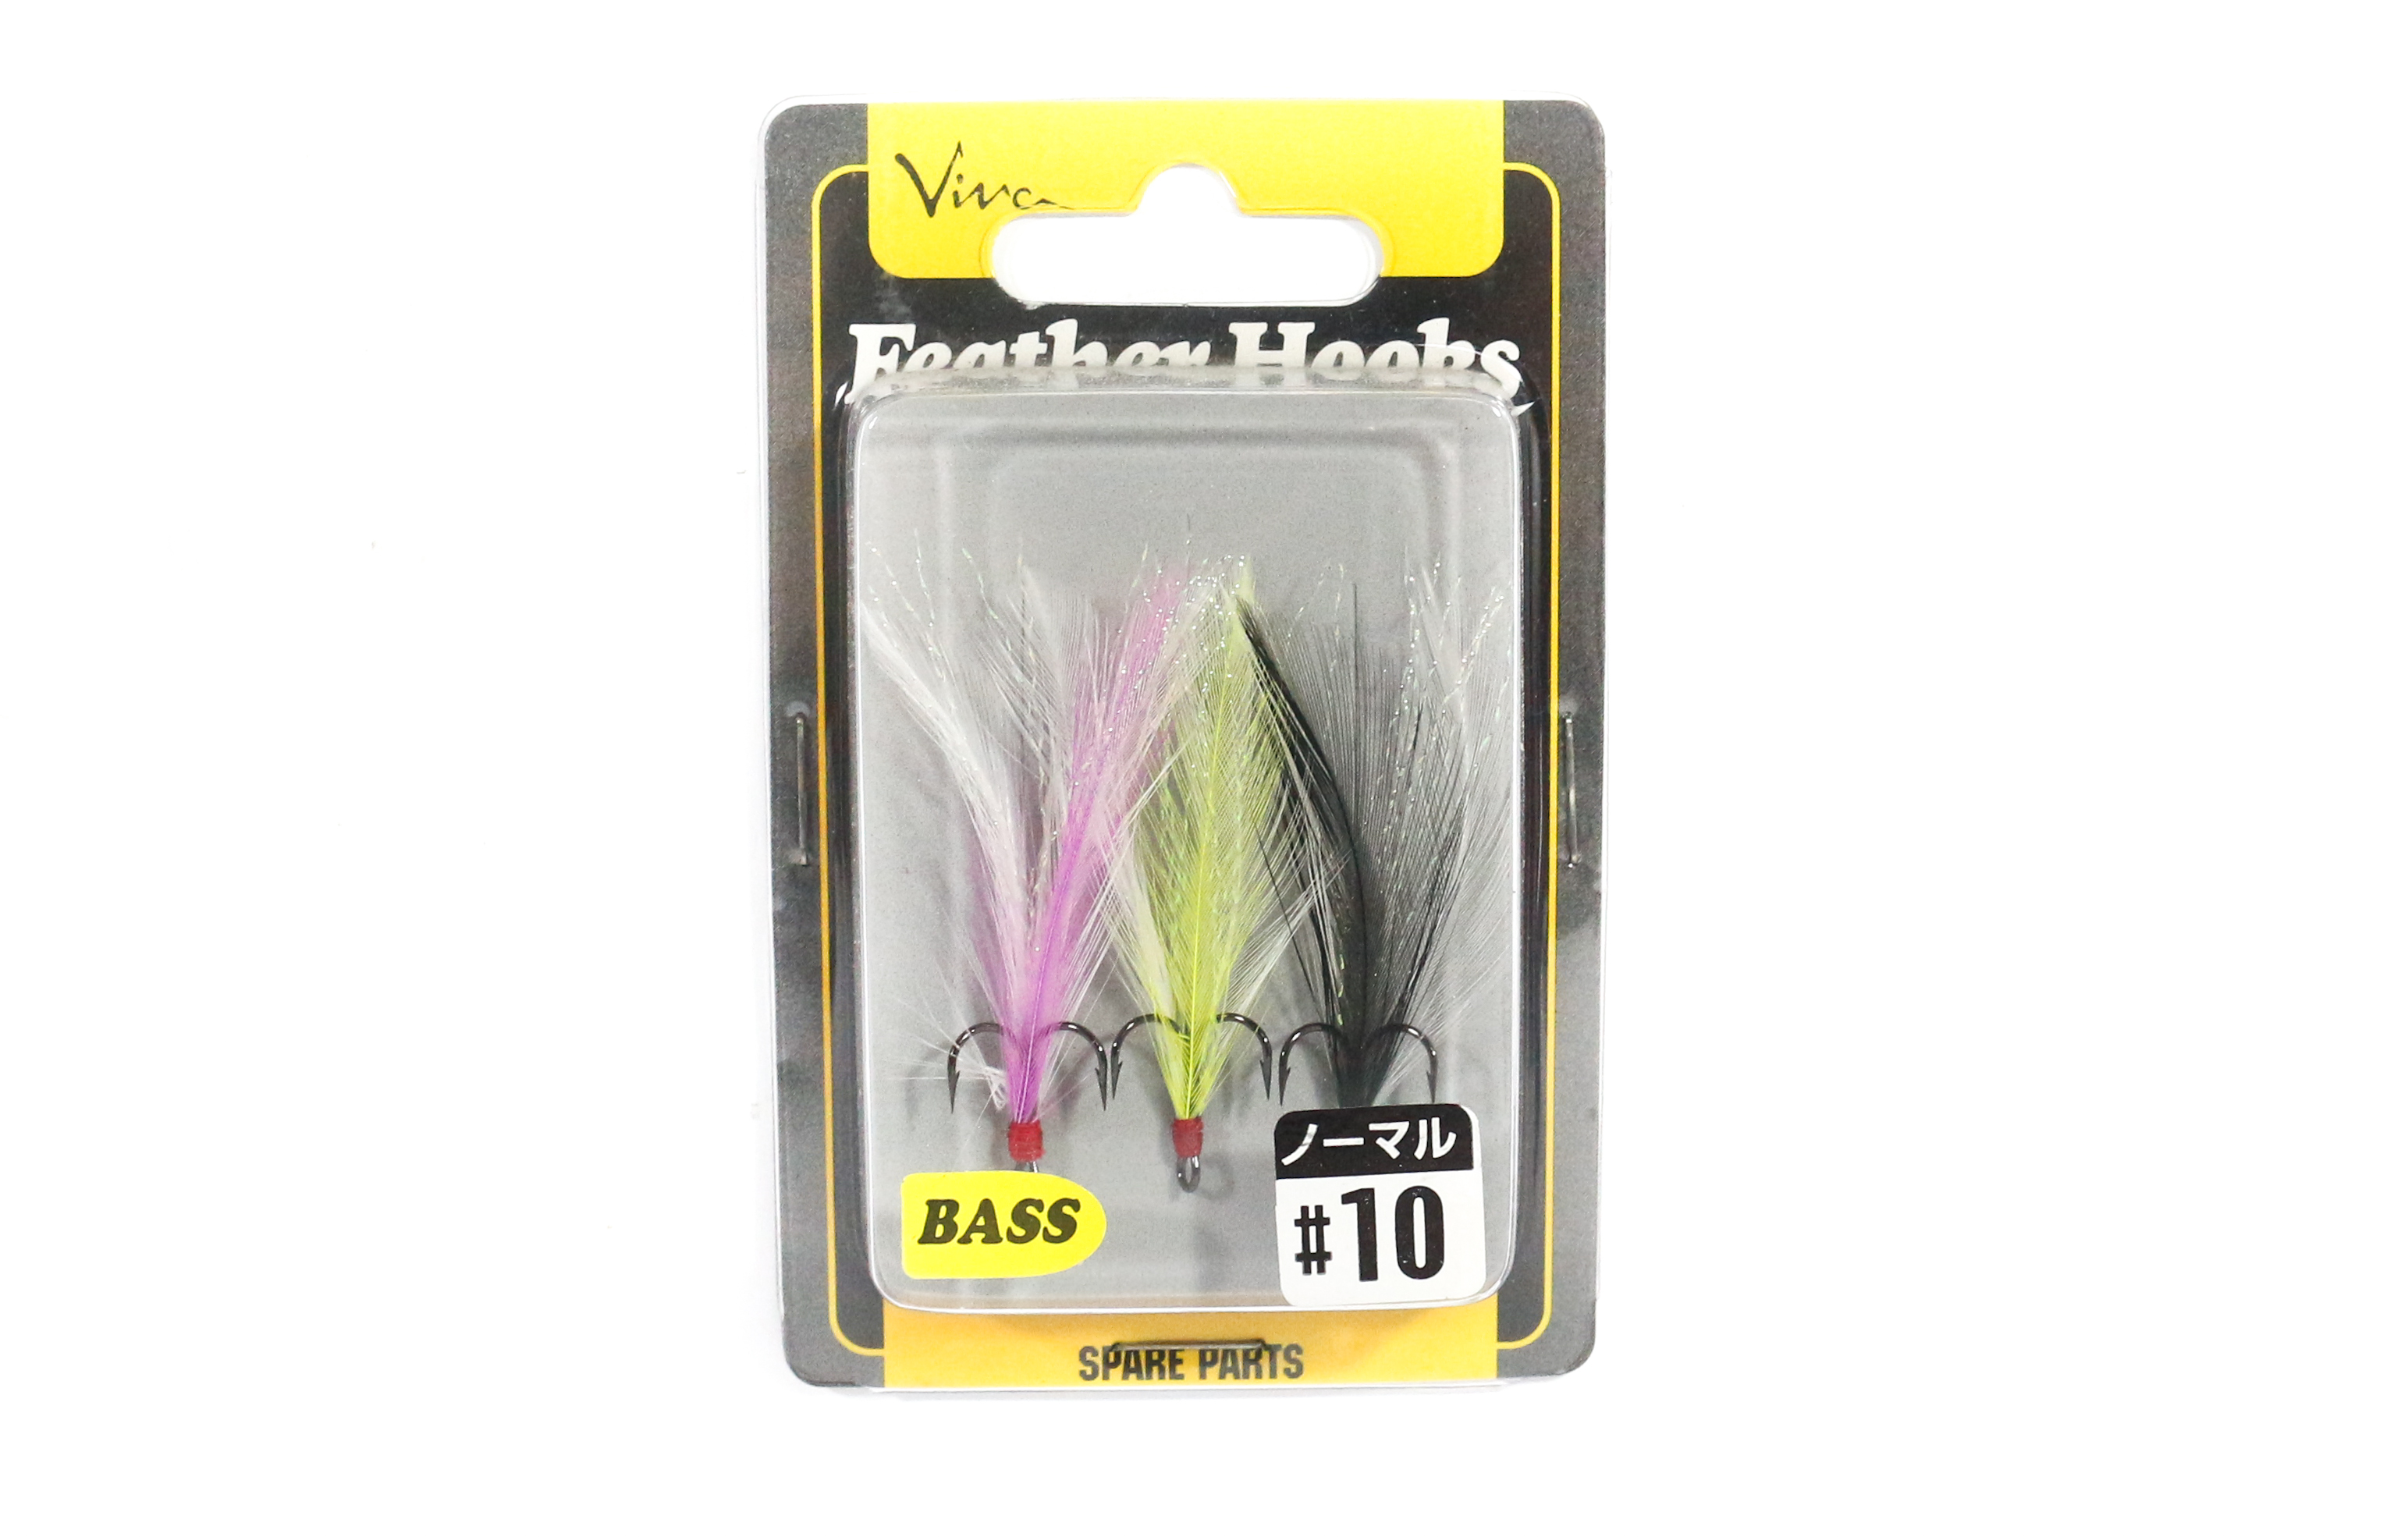 Viva Feather Hook Spare Tail Hooks for Bass Size 10 FH2 (4096)